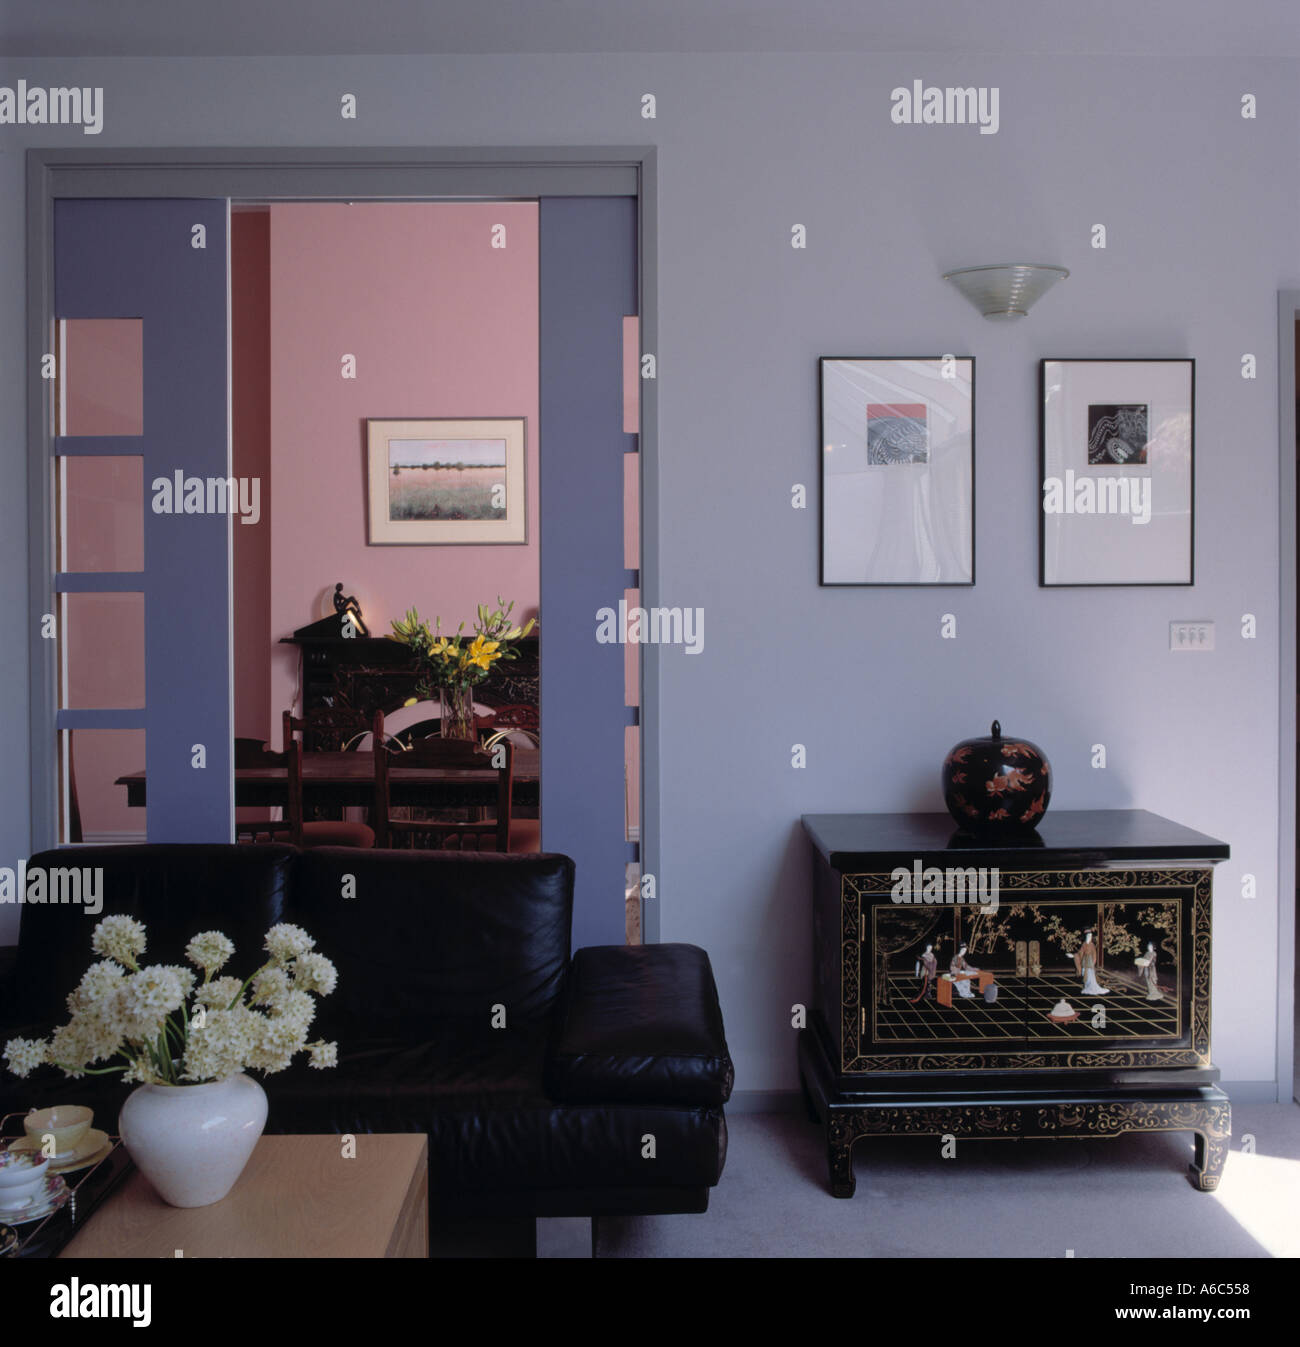 https://c8.alamy.com/comp/A6C558/oriental-chest-and-black-leather-sofa-in-pale-blue-modern-living-room-A6C558.jpg